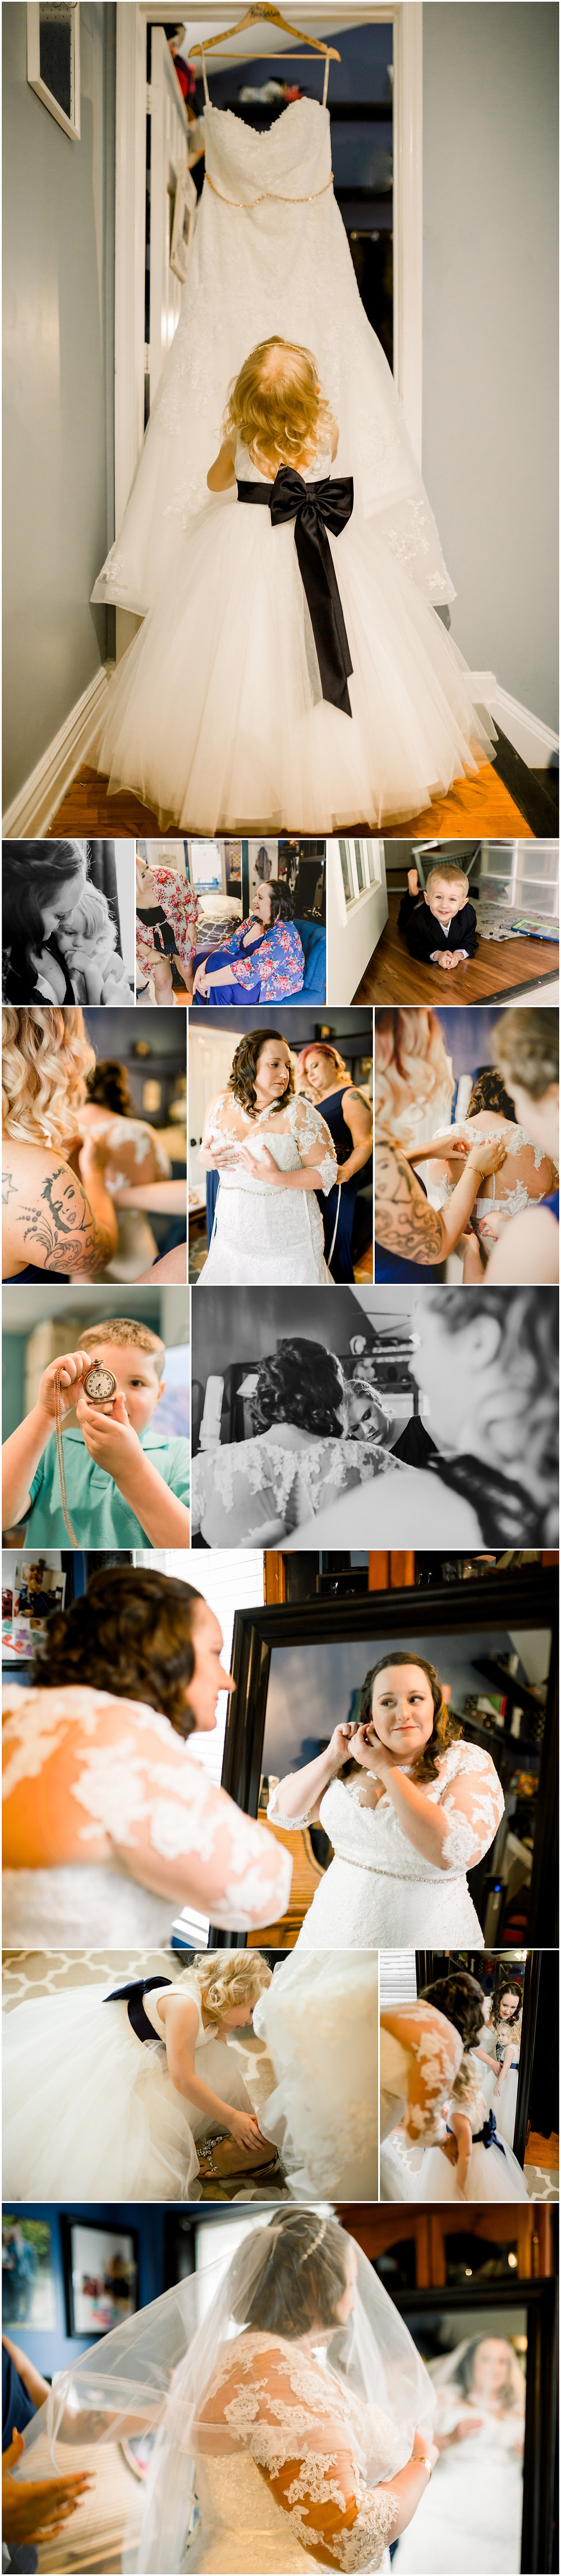 Bride getting ready with her daughter - Annapolis - Wedding Photography